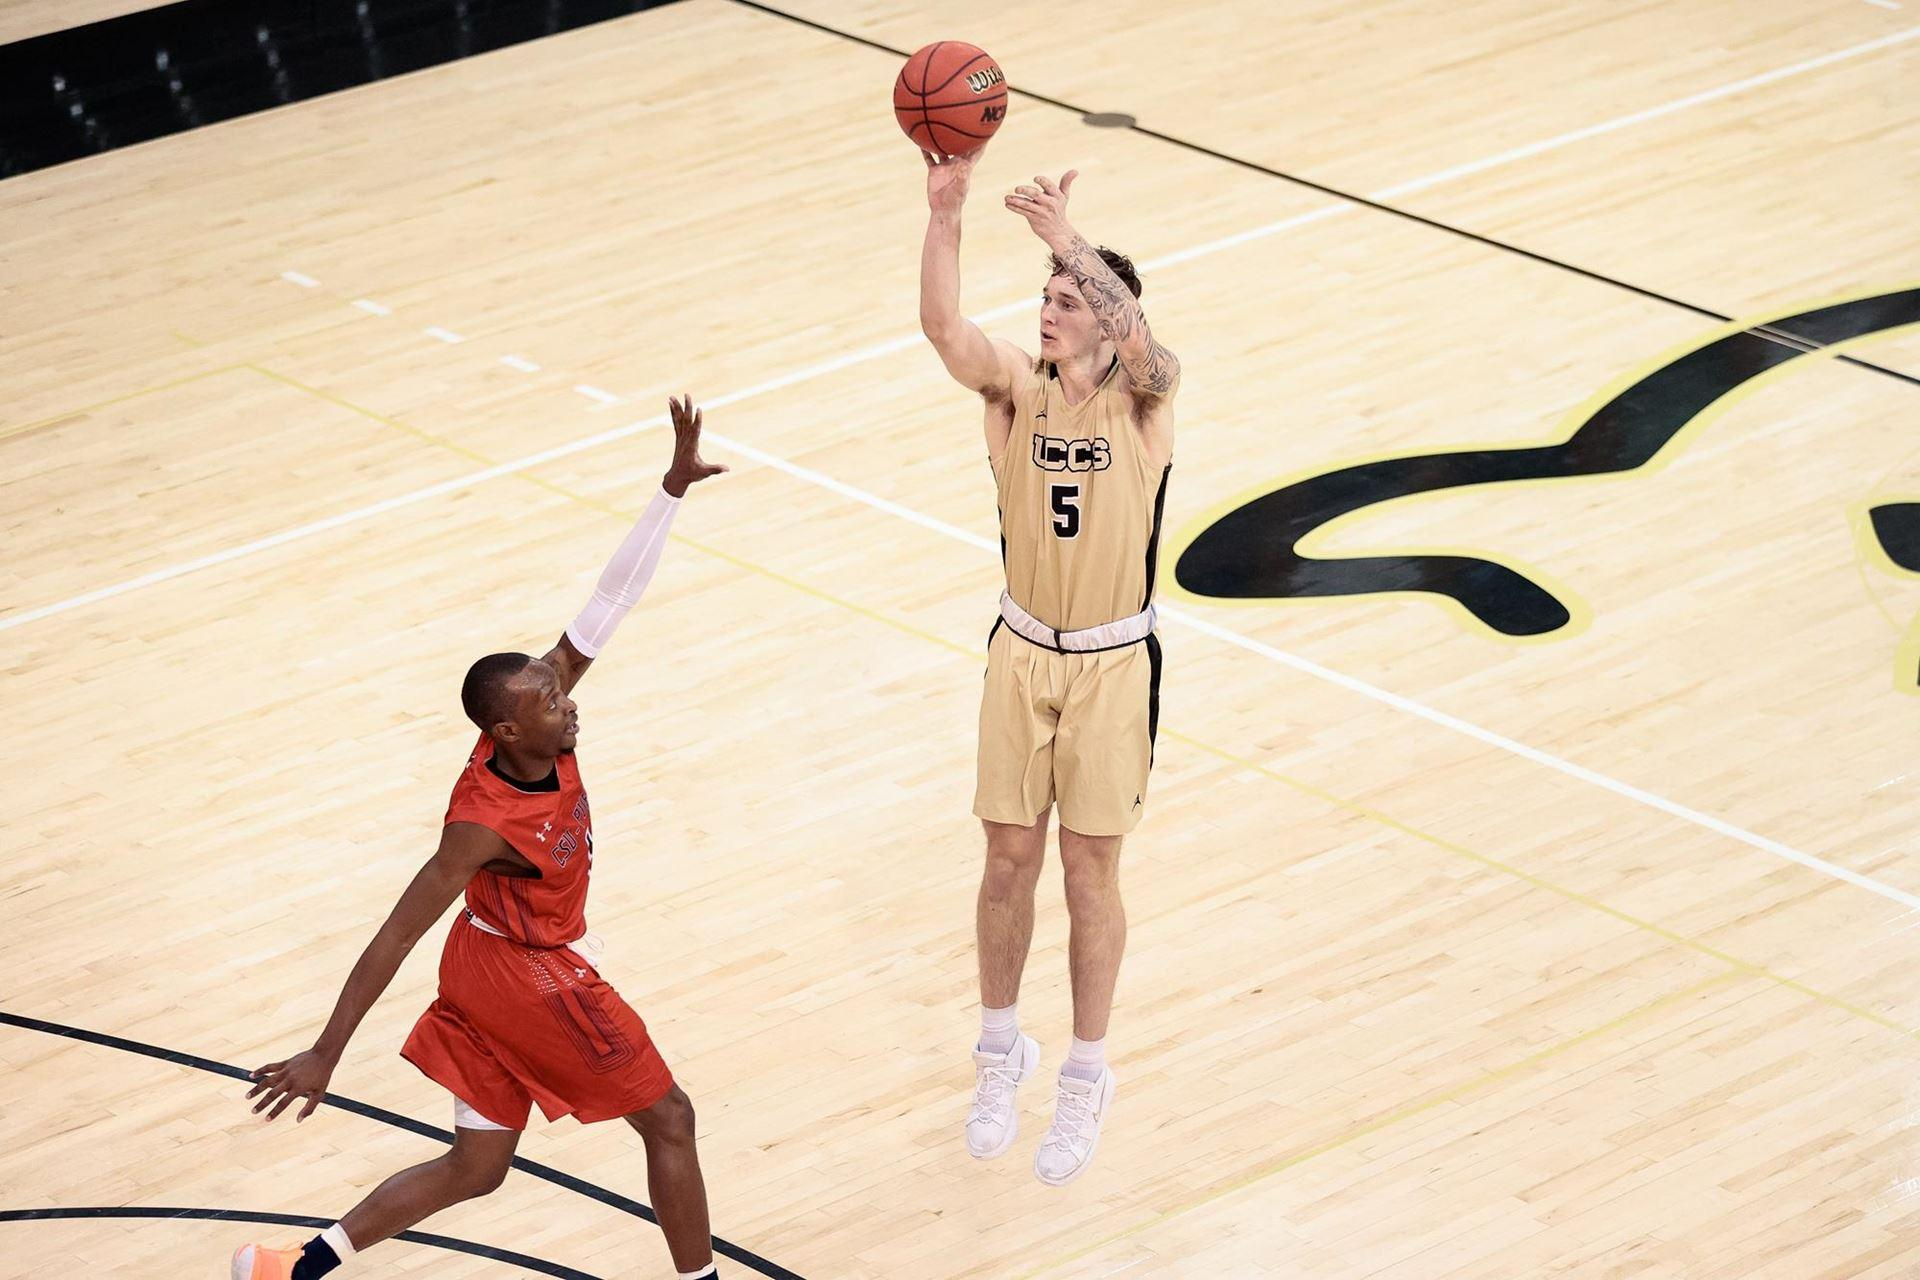 Wyatt Dolberry shooting a three-pointer in Gallogly Events Center